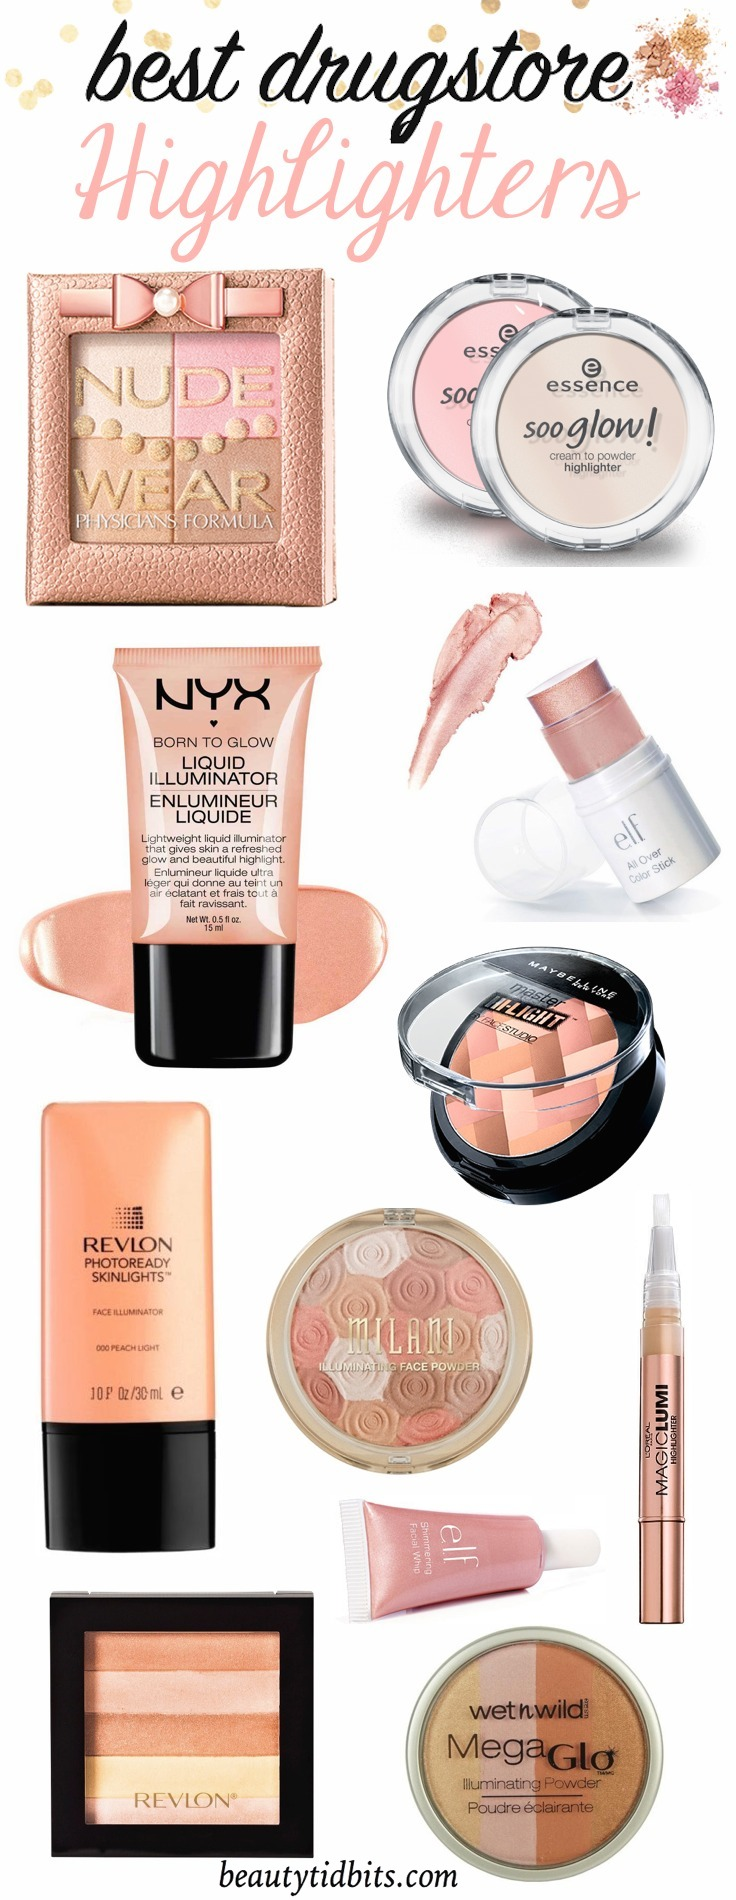 Best drugstore highlighters and Illuminators